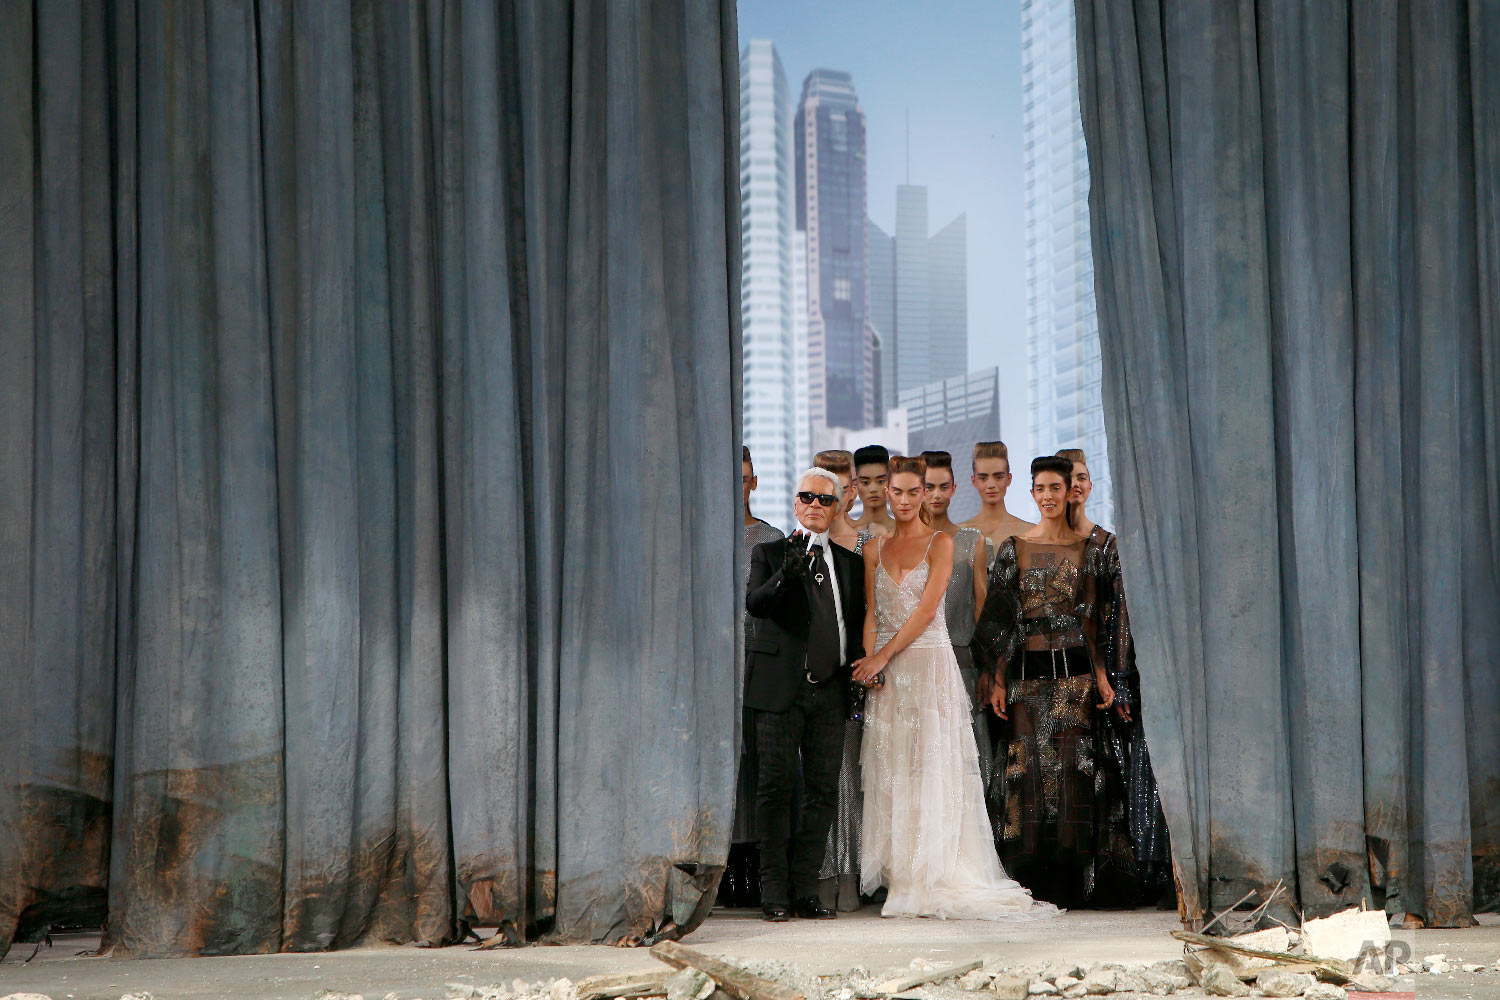 German fashion designer Karl Lagerfeld, foreground left, stands with models on stage as he acknowledges applause following the presentation of the Haute Couture Fall-Winter 2013-2014 collection he designed for Chanel, July 2, 2013 in Paris. (AP Photo/Francois Mori)